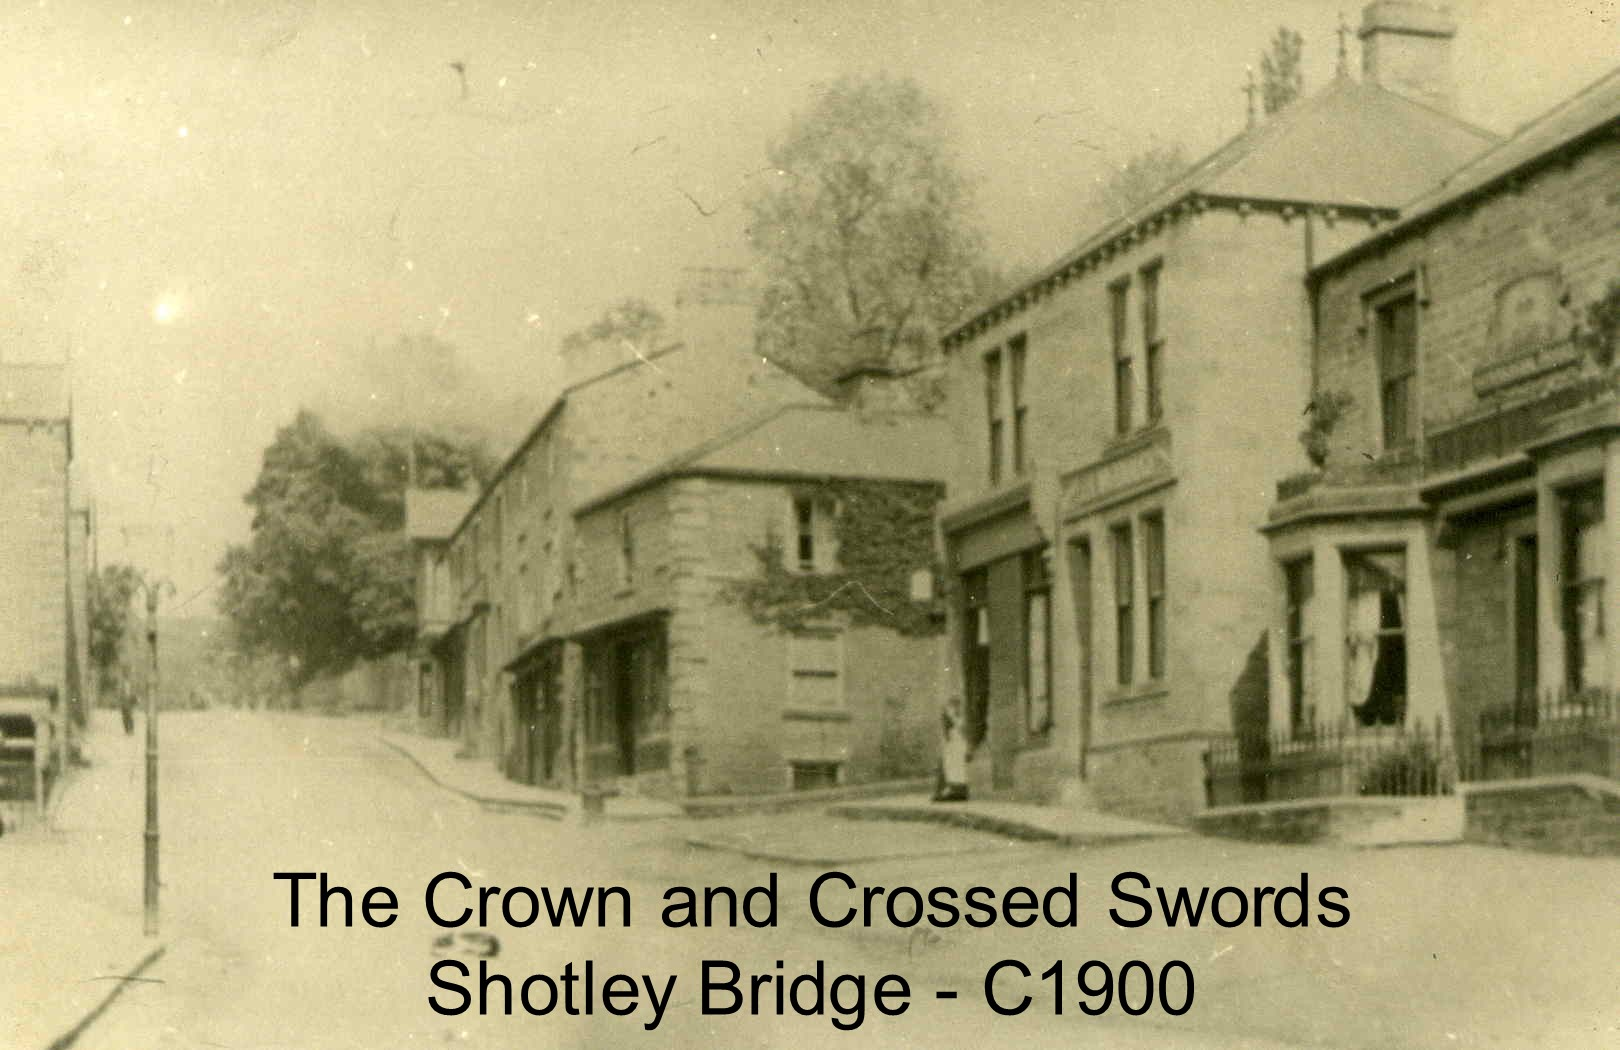 the lasting heratige of the sword makers in Shotley Bridge